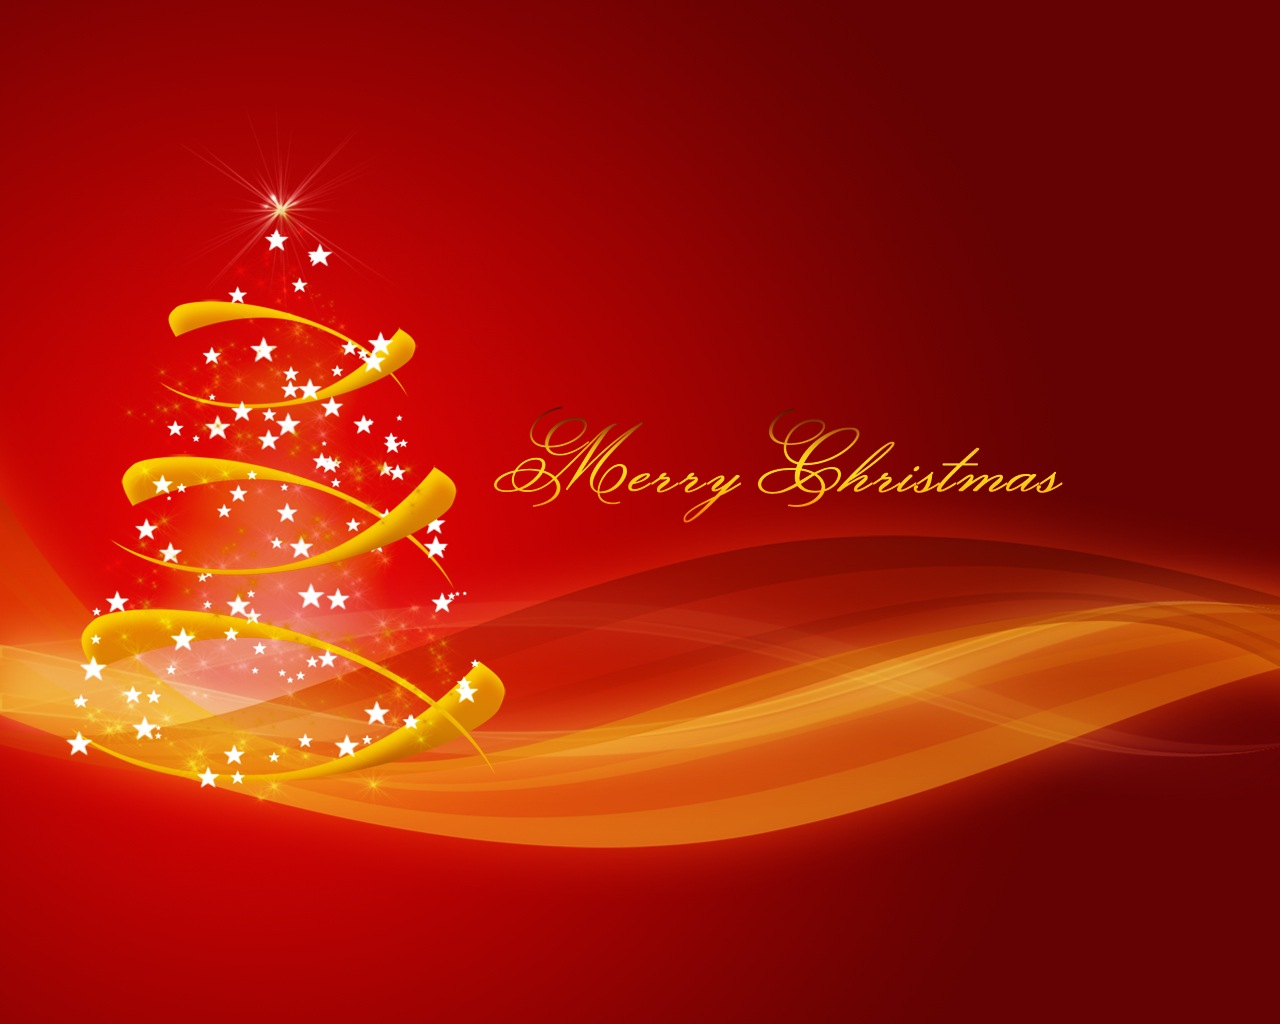 Download wallpapers free download christmas 2010 wallpapers - Free christmas wallpaper backgrounds ...